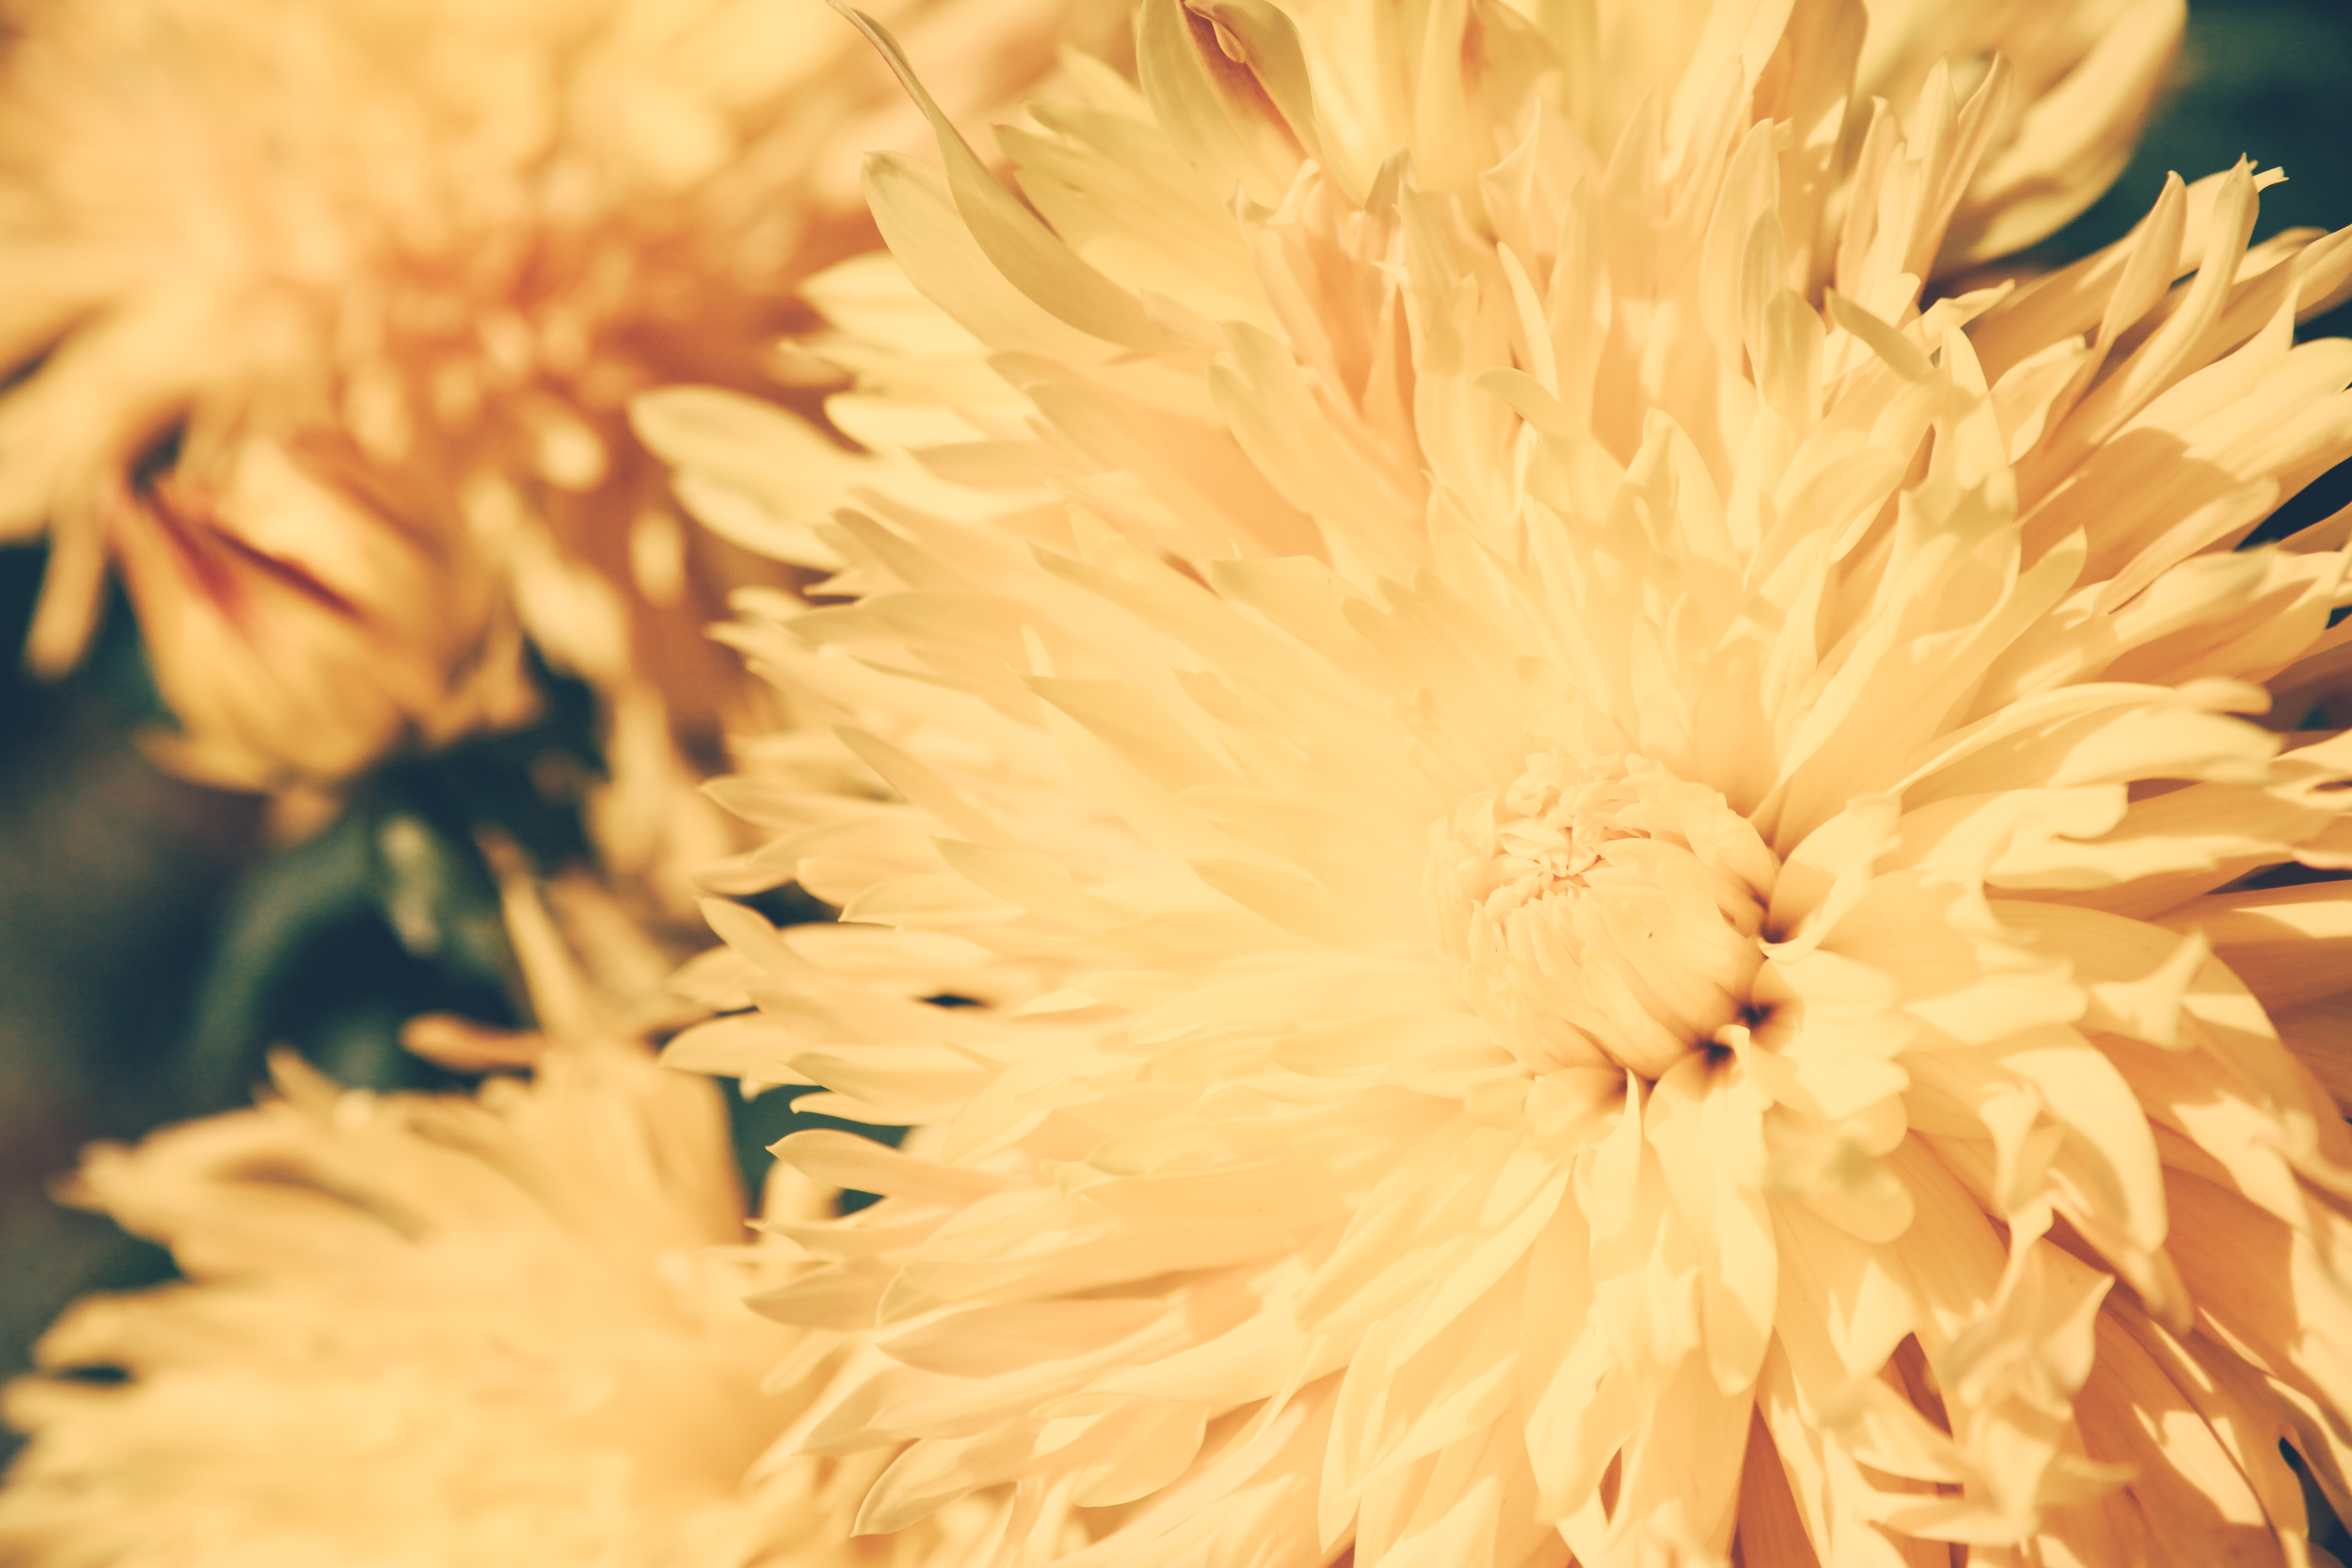 93911 download wallpaper Flowers, Chrysanthemum, Petals, Flower, Light Coloured, Light screensavers and pictures for free